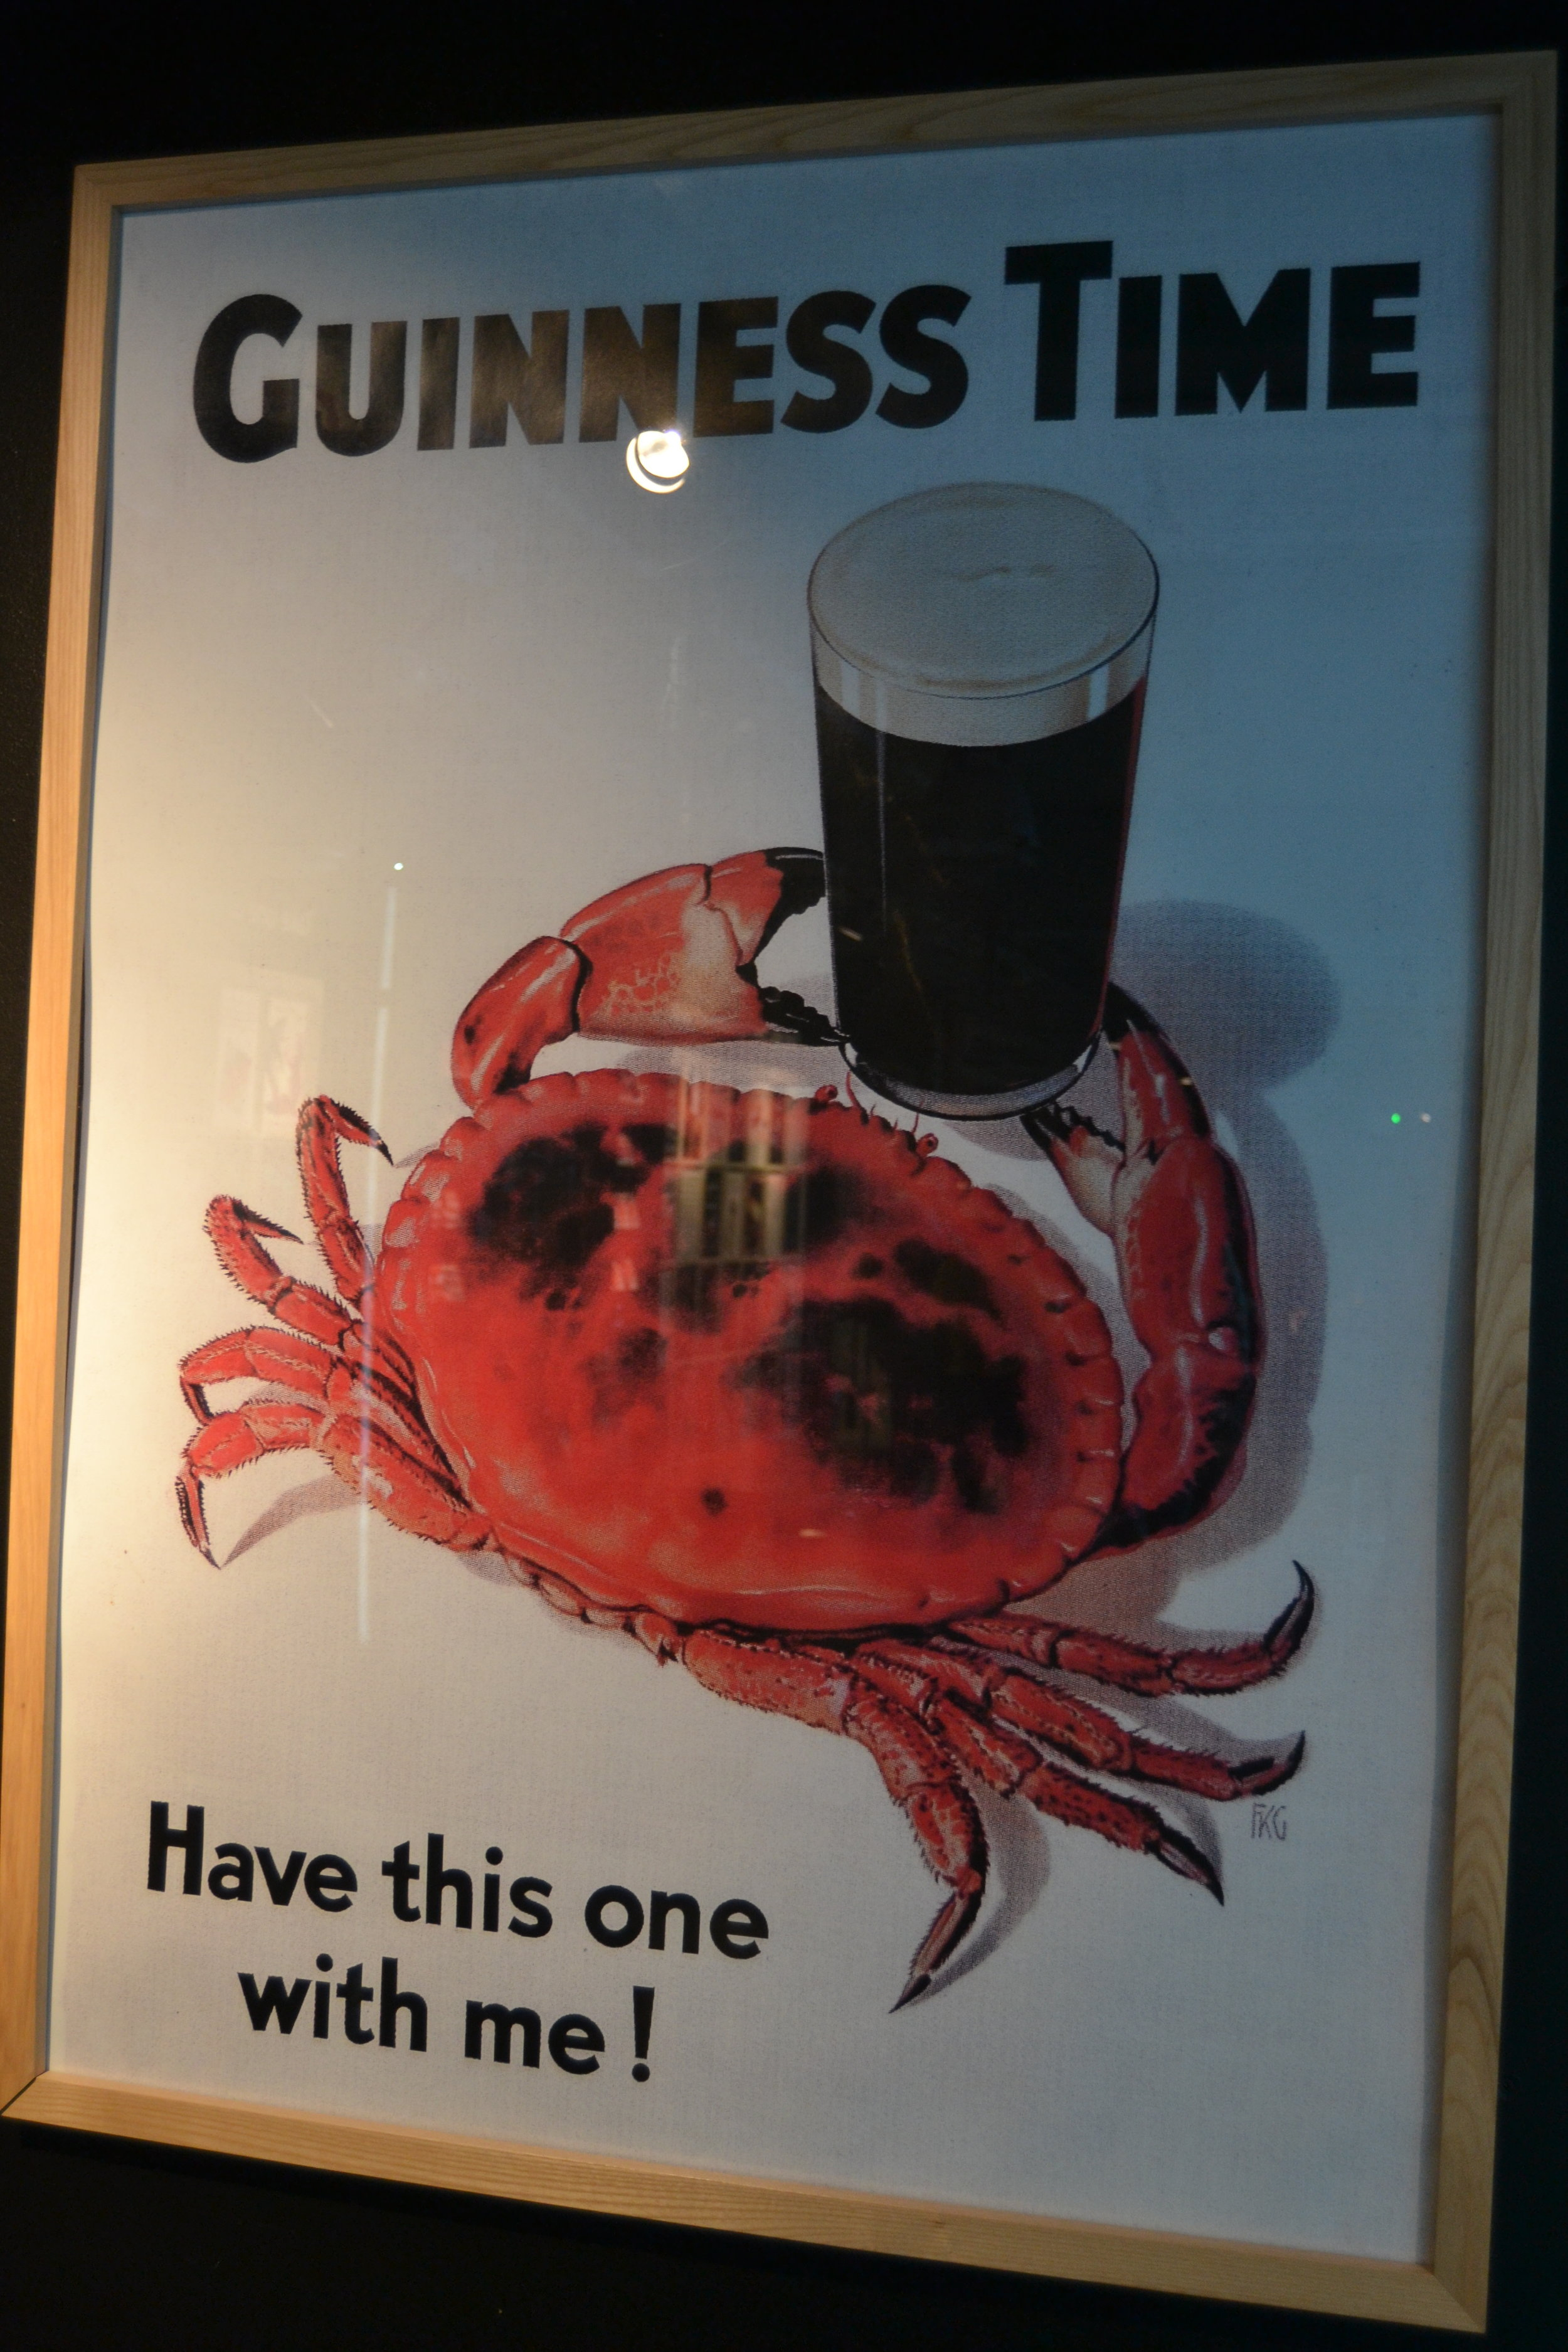 One of the many Guinness advertisements present in the Guinness Storehouse